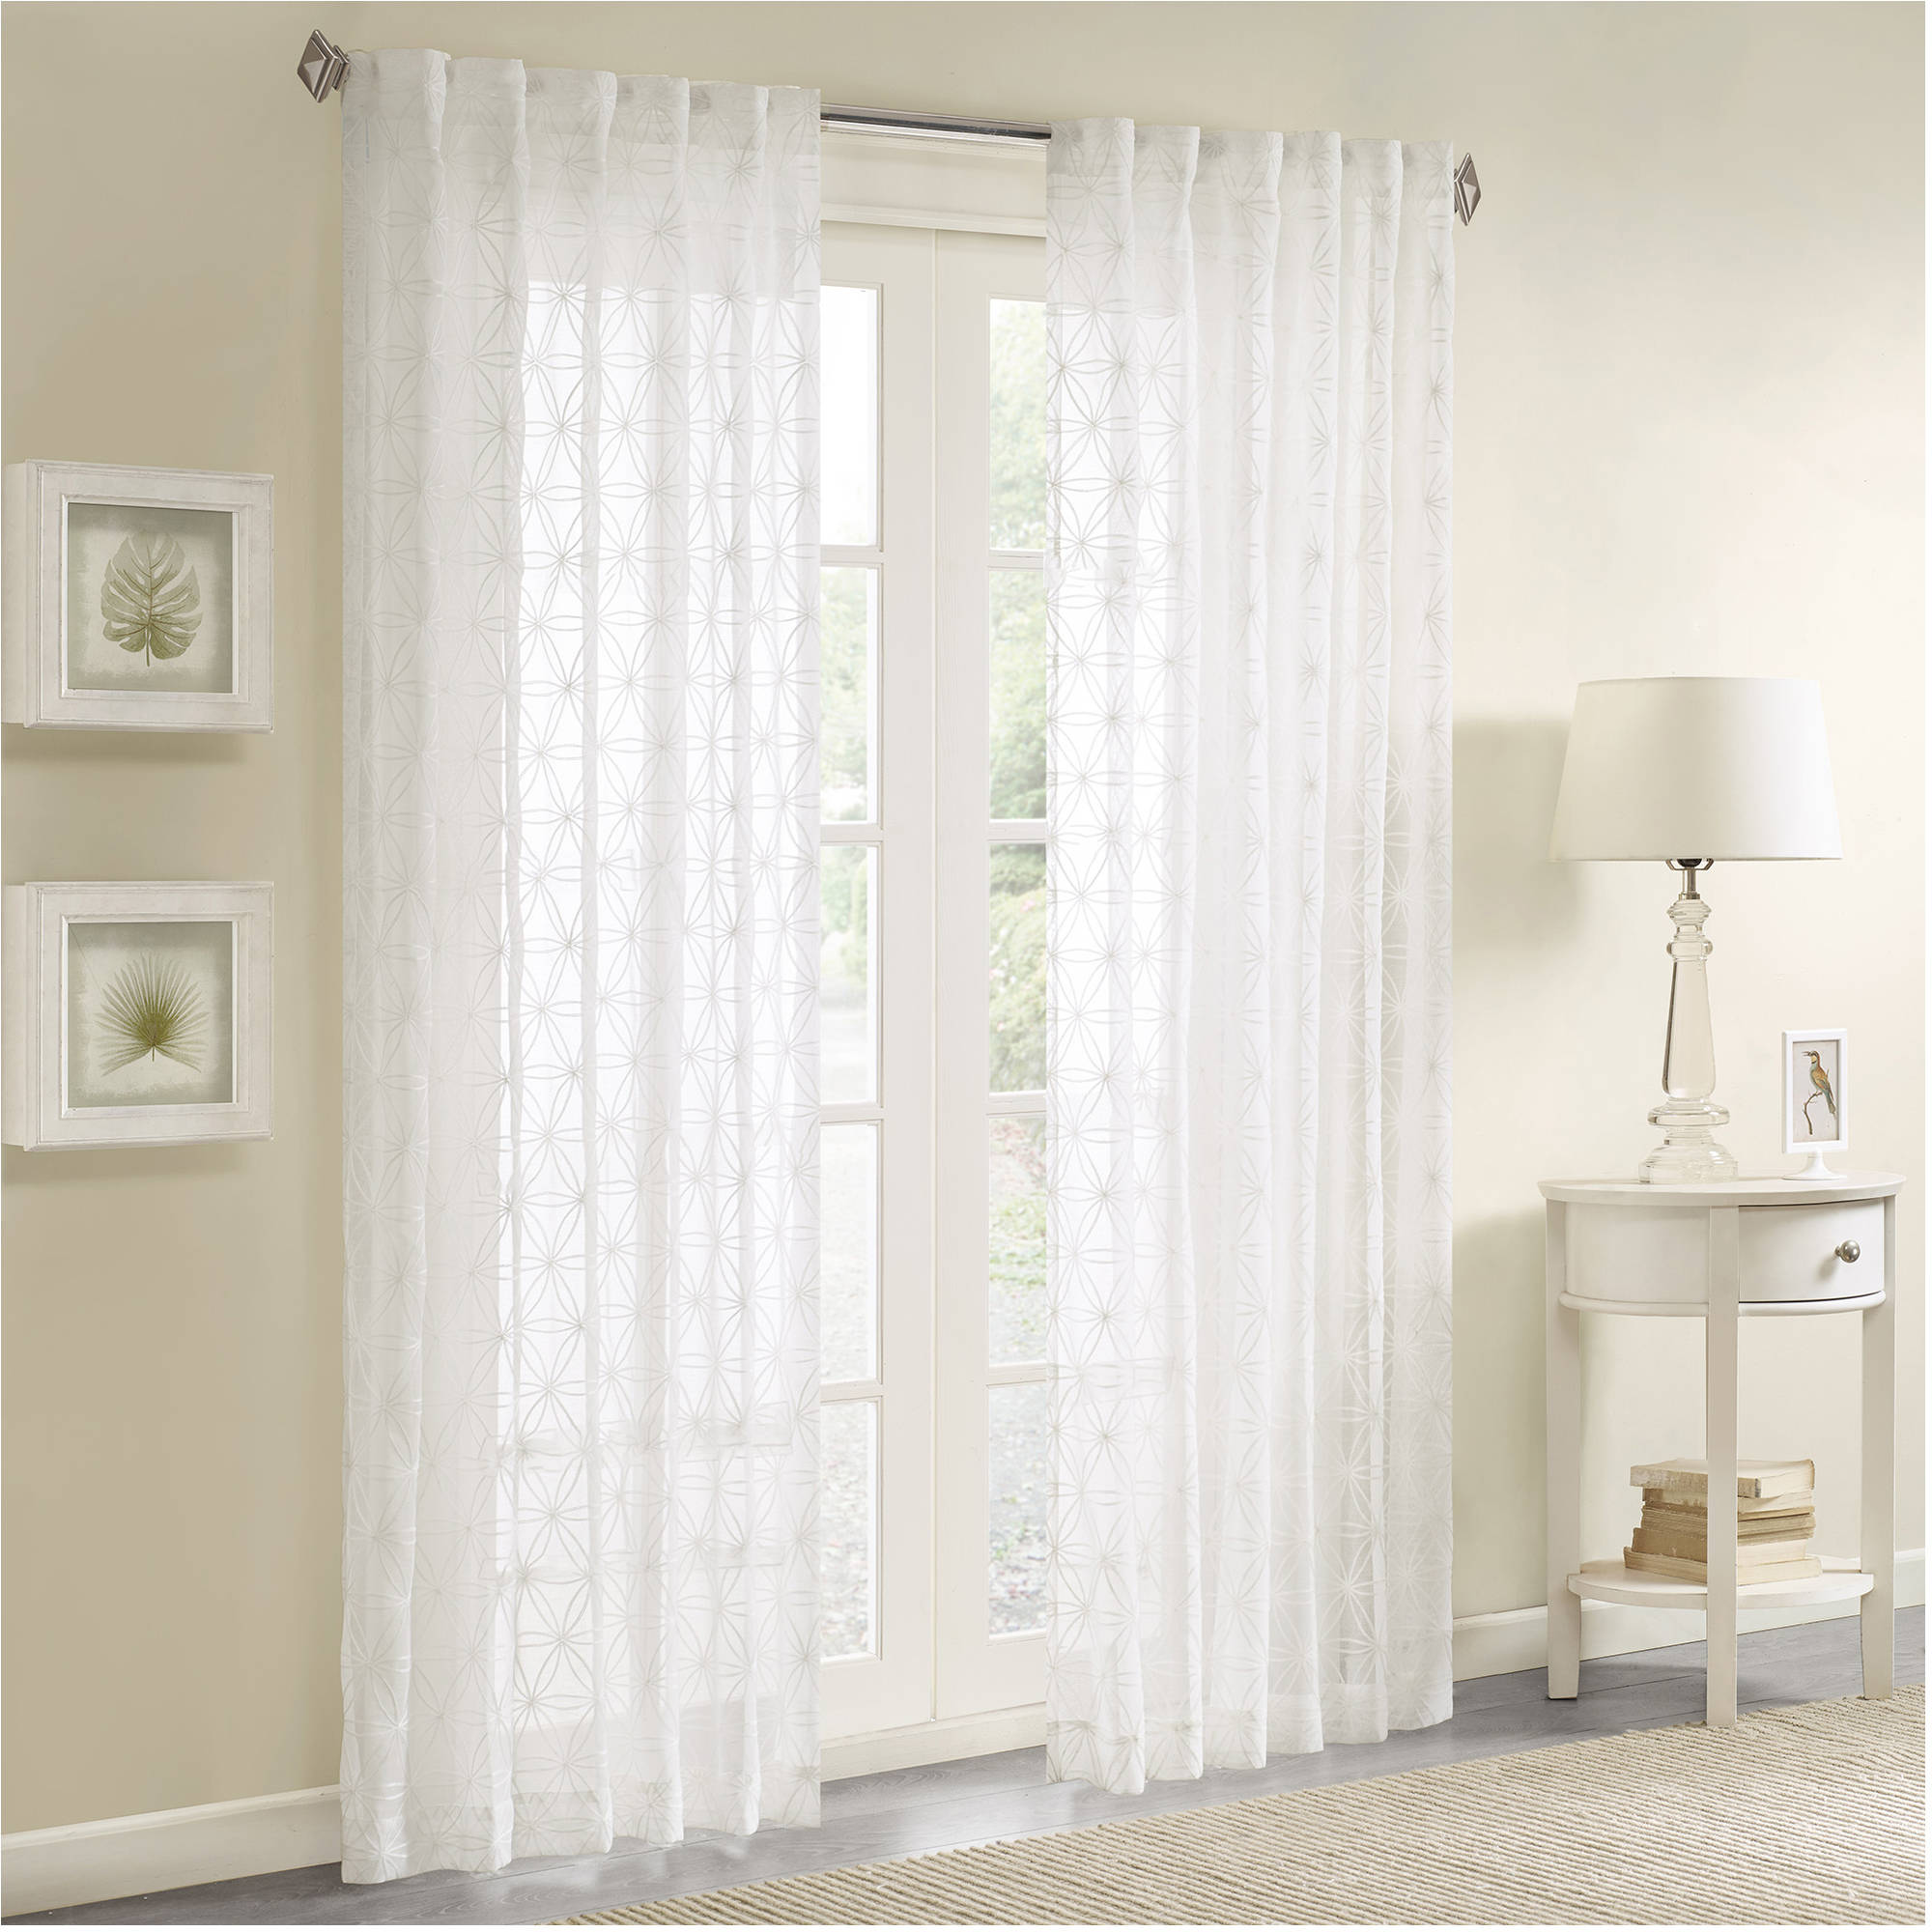 Home Essence Vera Sheer Embroidered Window Panel